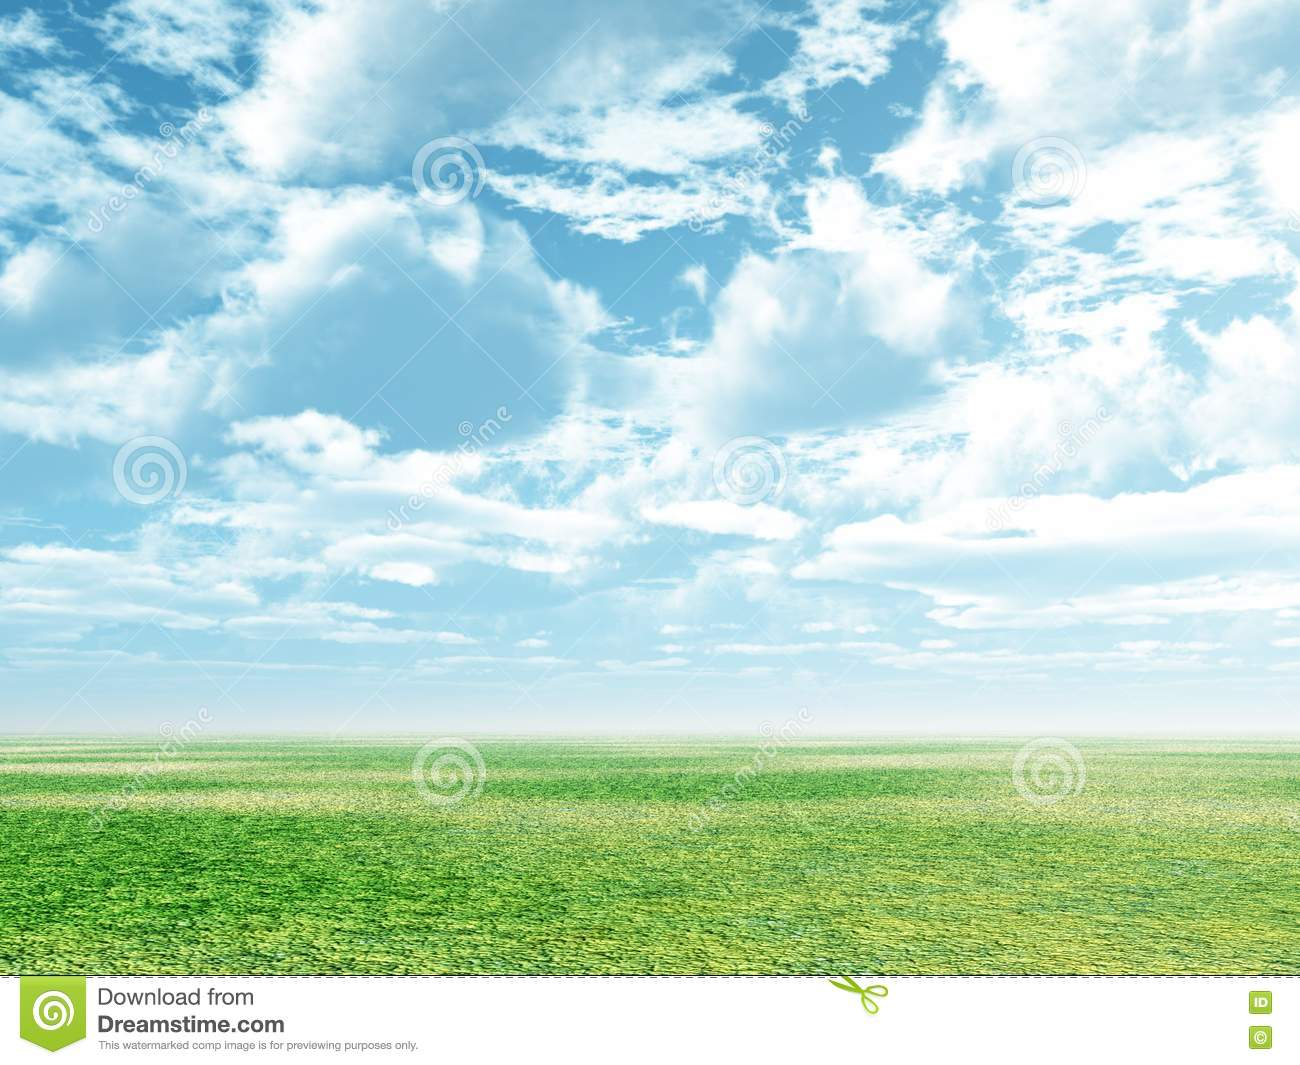 265e070b414 Free Stock Photography  Spring Scenery Picture. Image  5864997